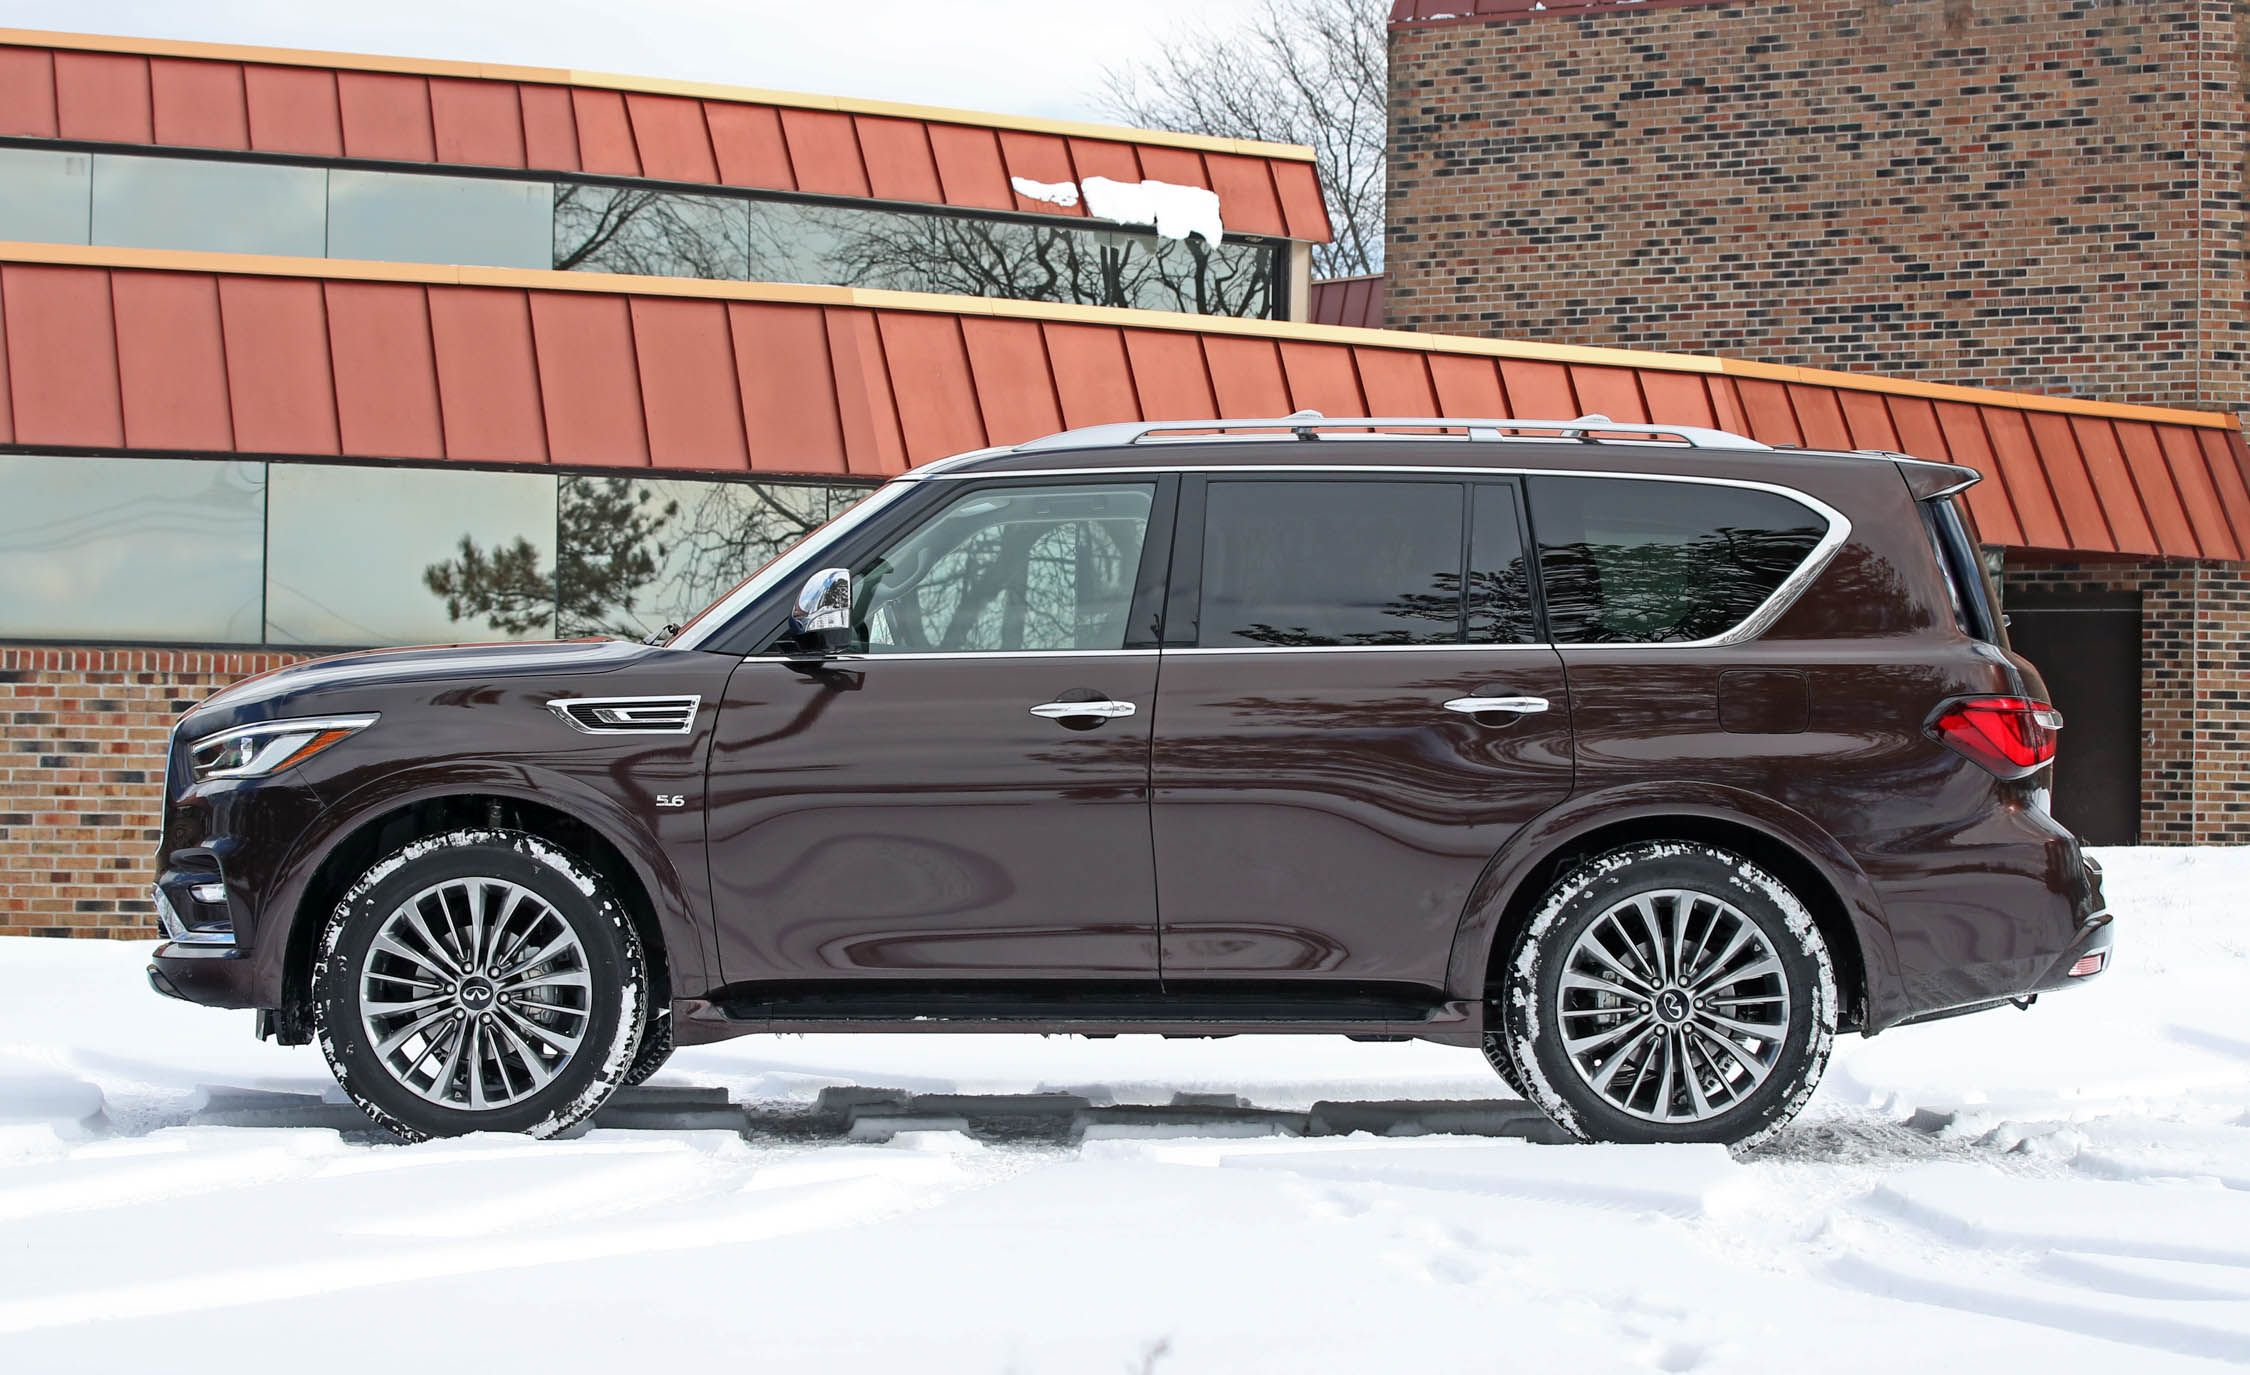 2018 Infiniti QX80 | Interior and Passenger Space Review | Car and Driver